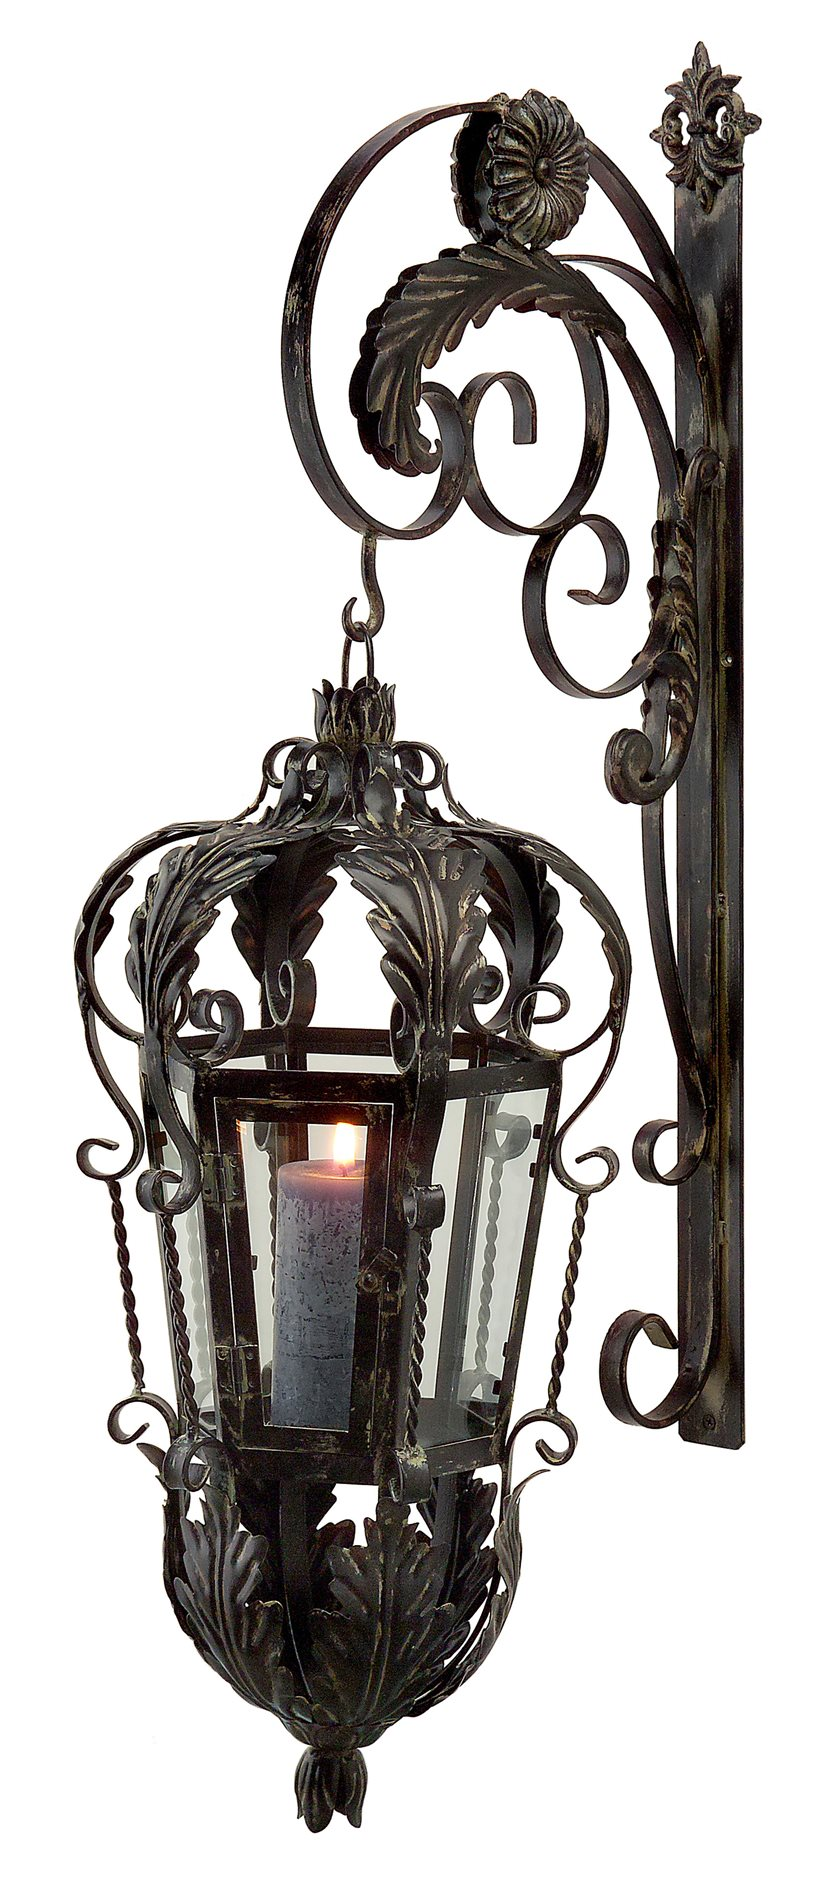 Imax 5737 Balfour With Bracket Traditional Wall Sconce Ix 5737